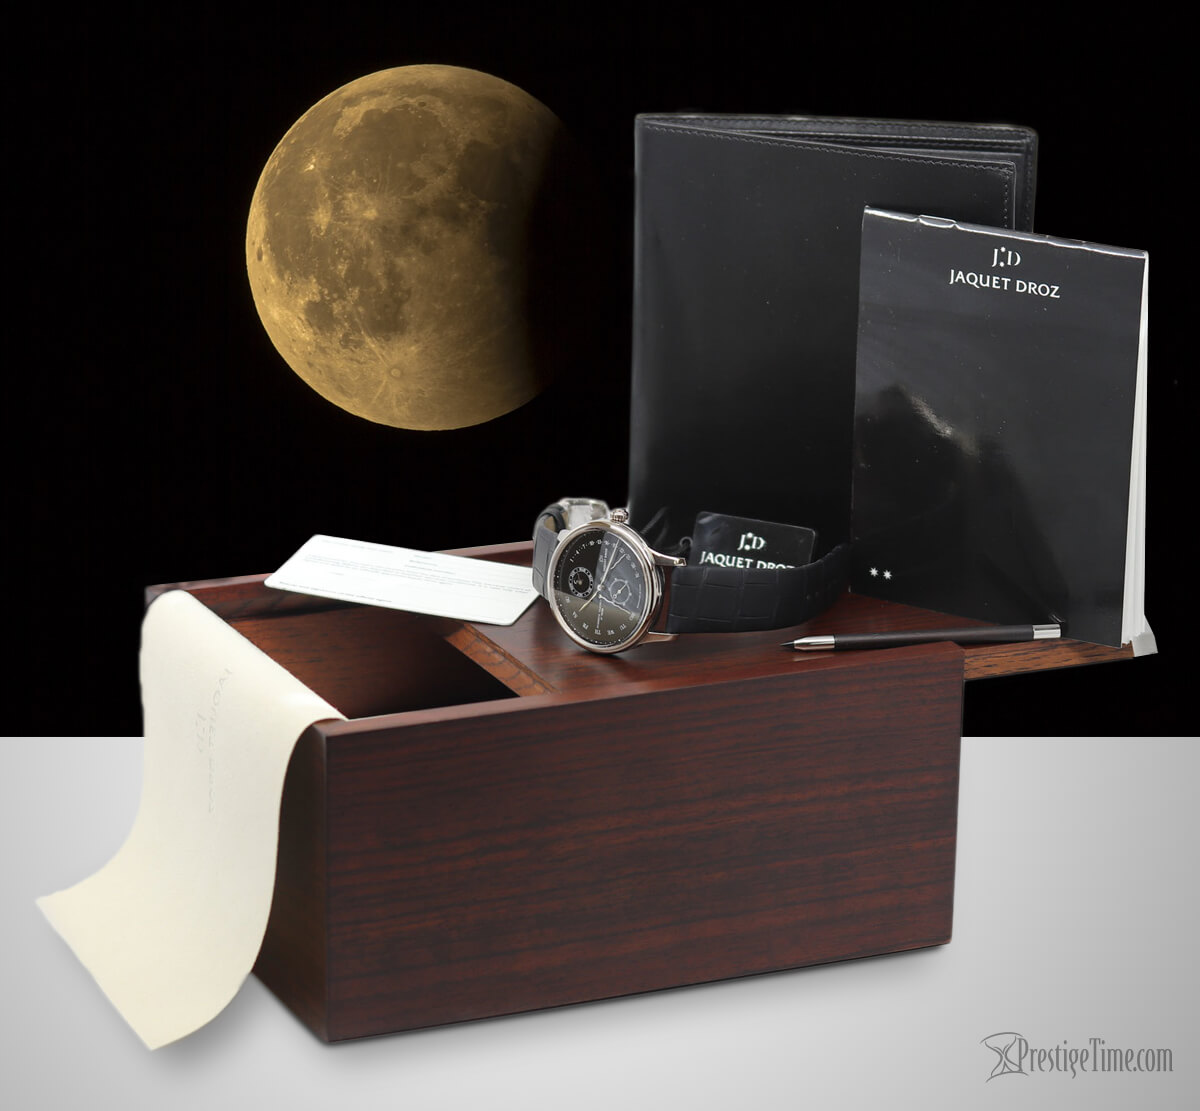 Jaquet Droz Astrale Perpetual Calendar box and packaging